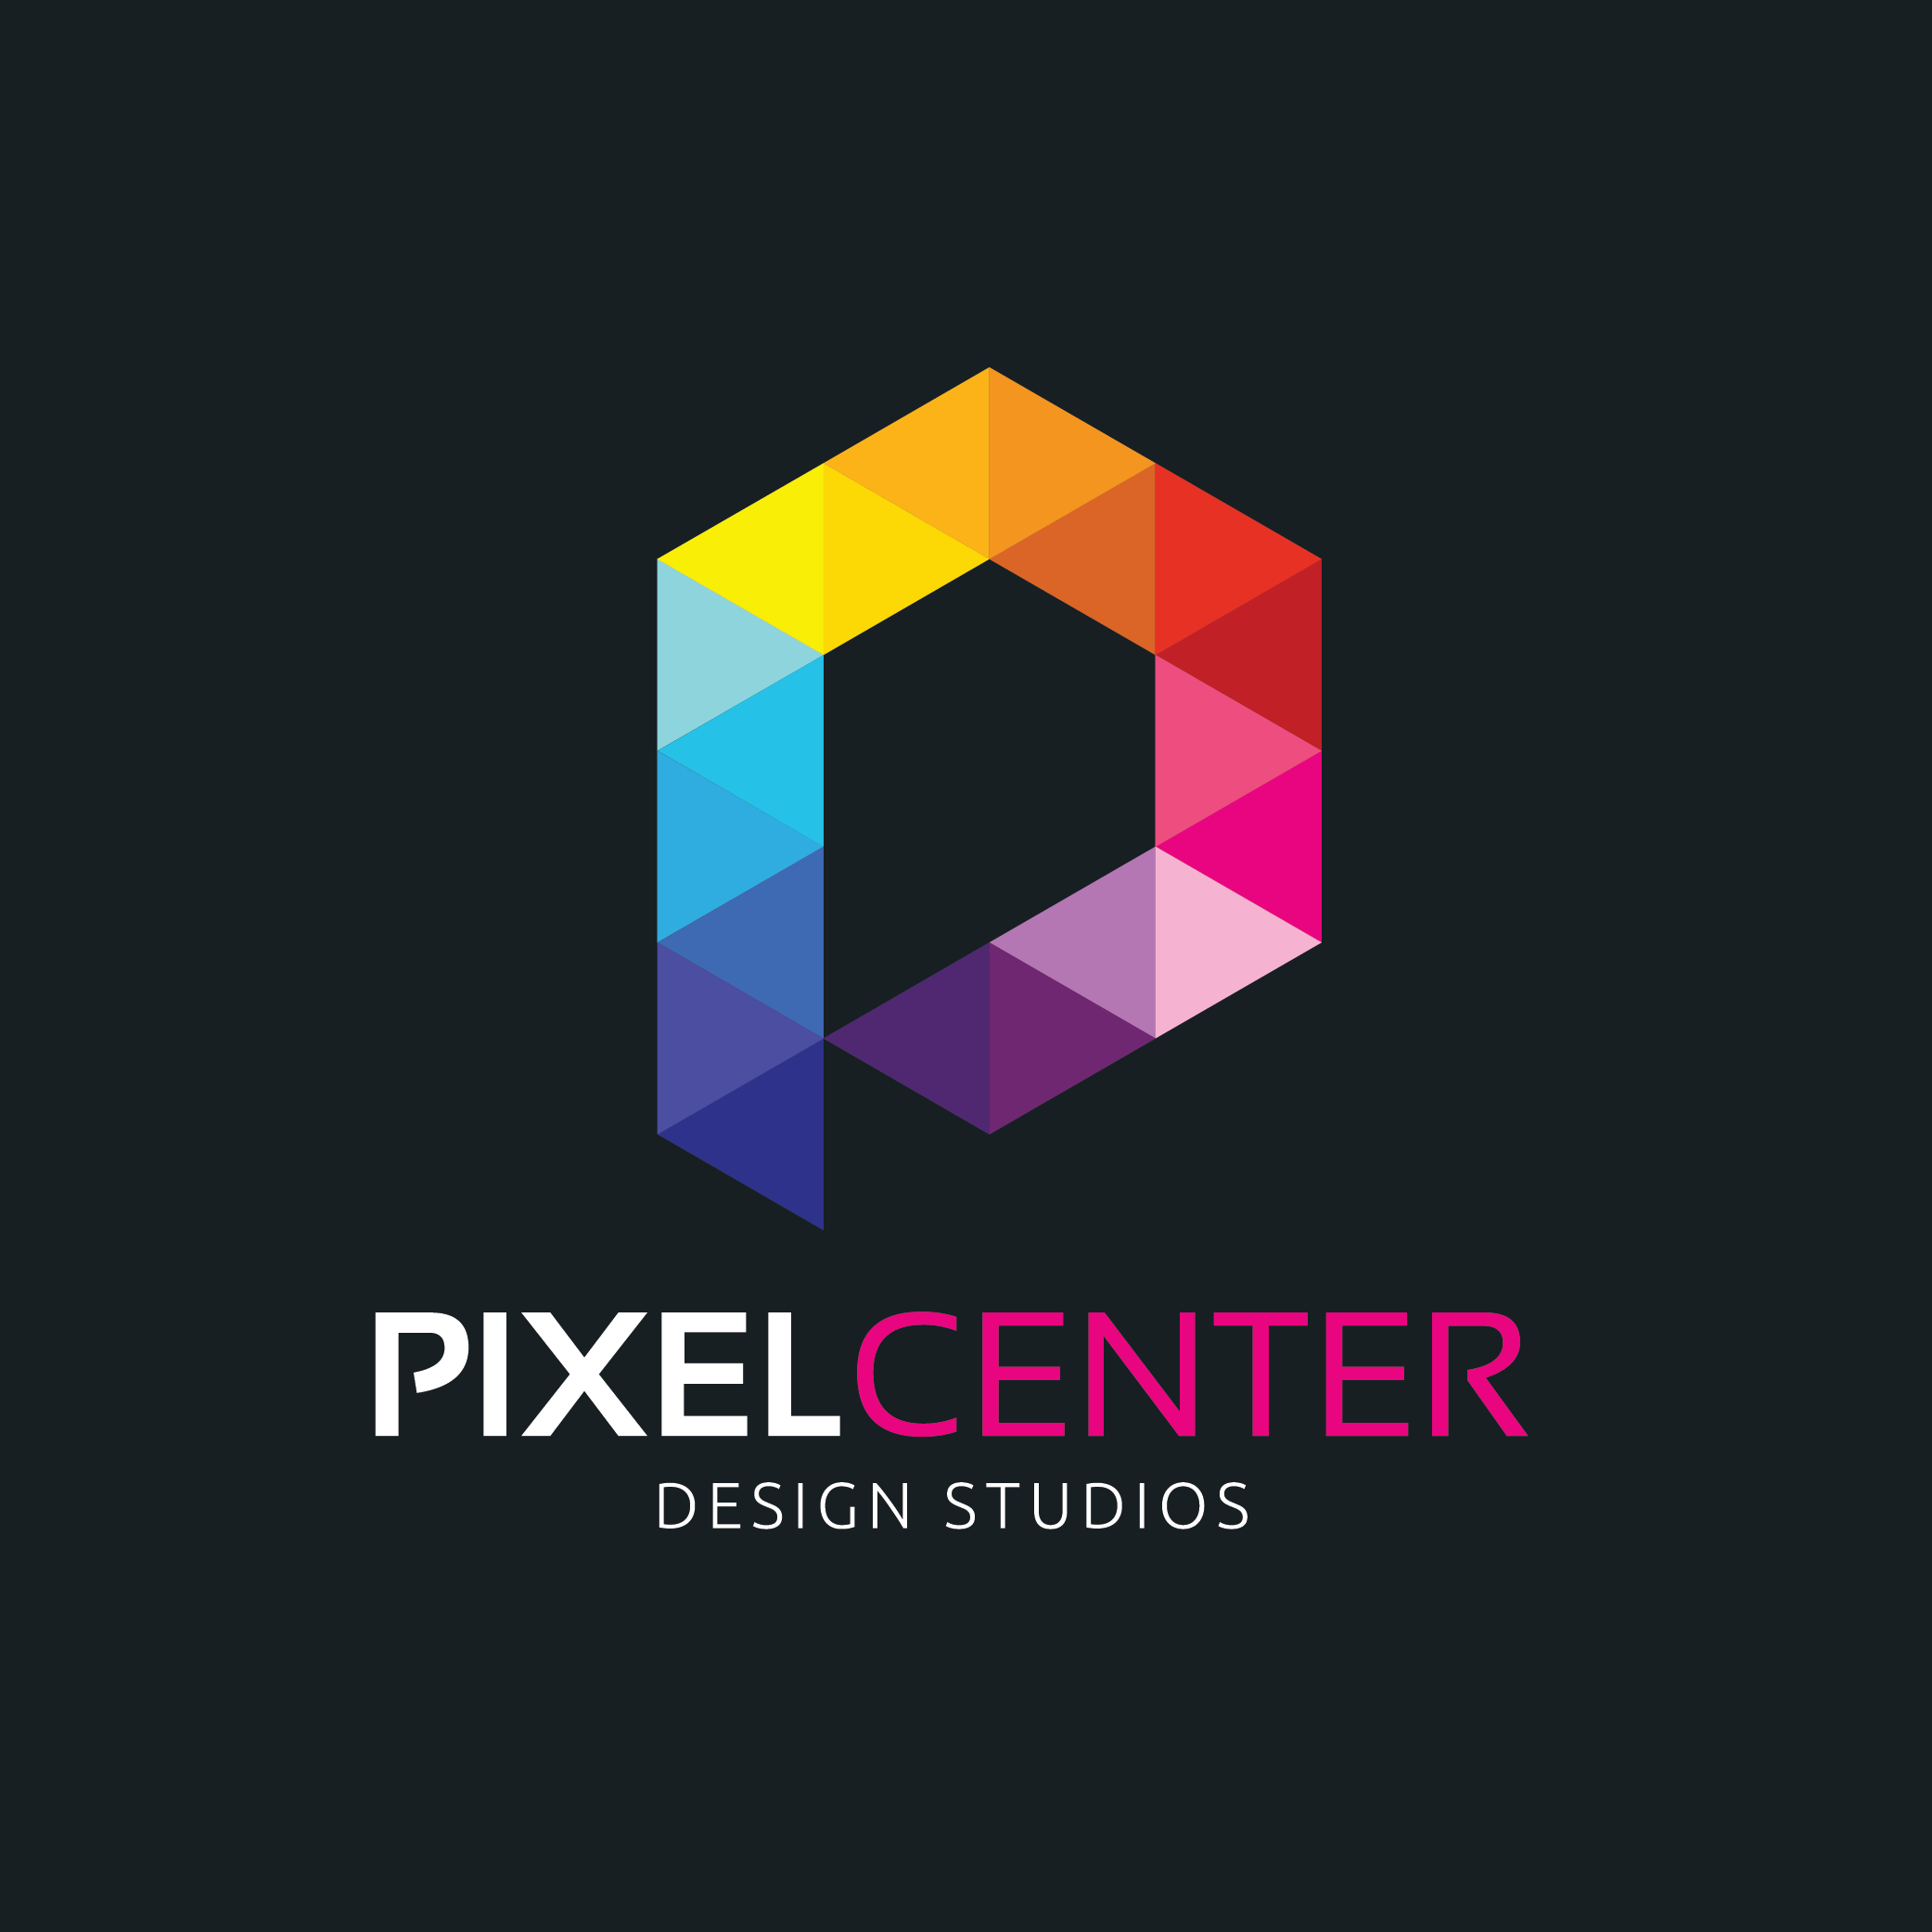 Pixel Center Design Studio by fahadmoten92  a perfect logo for Art & Design